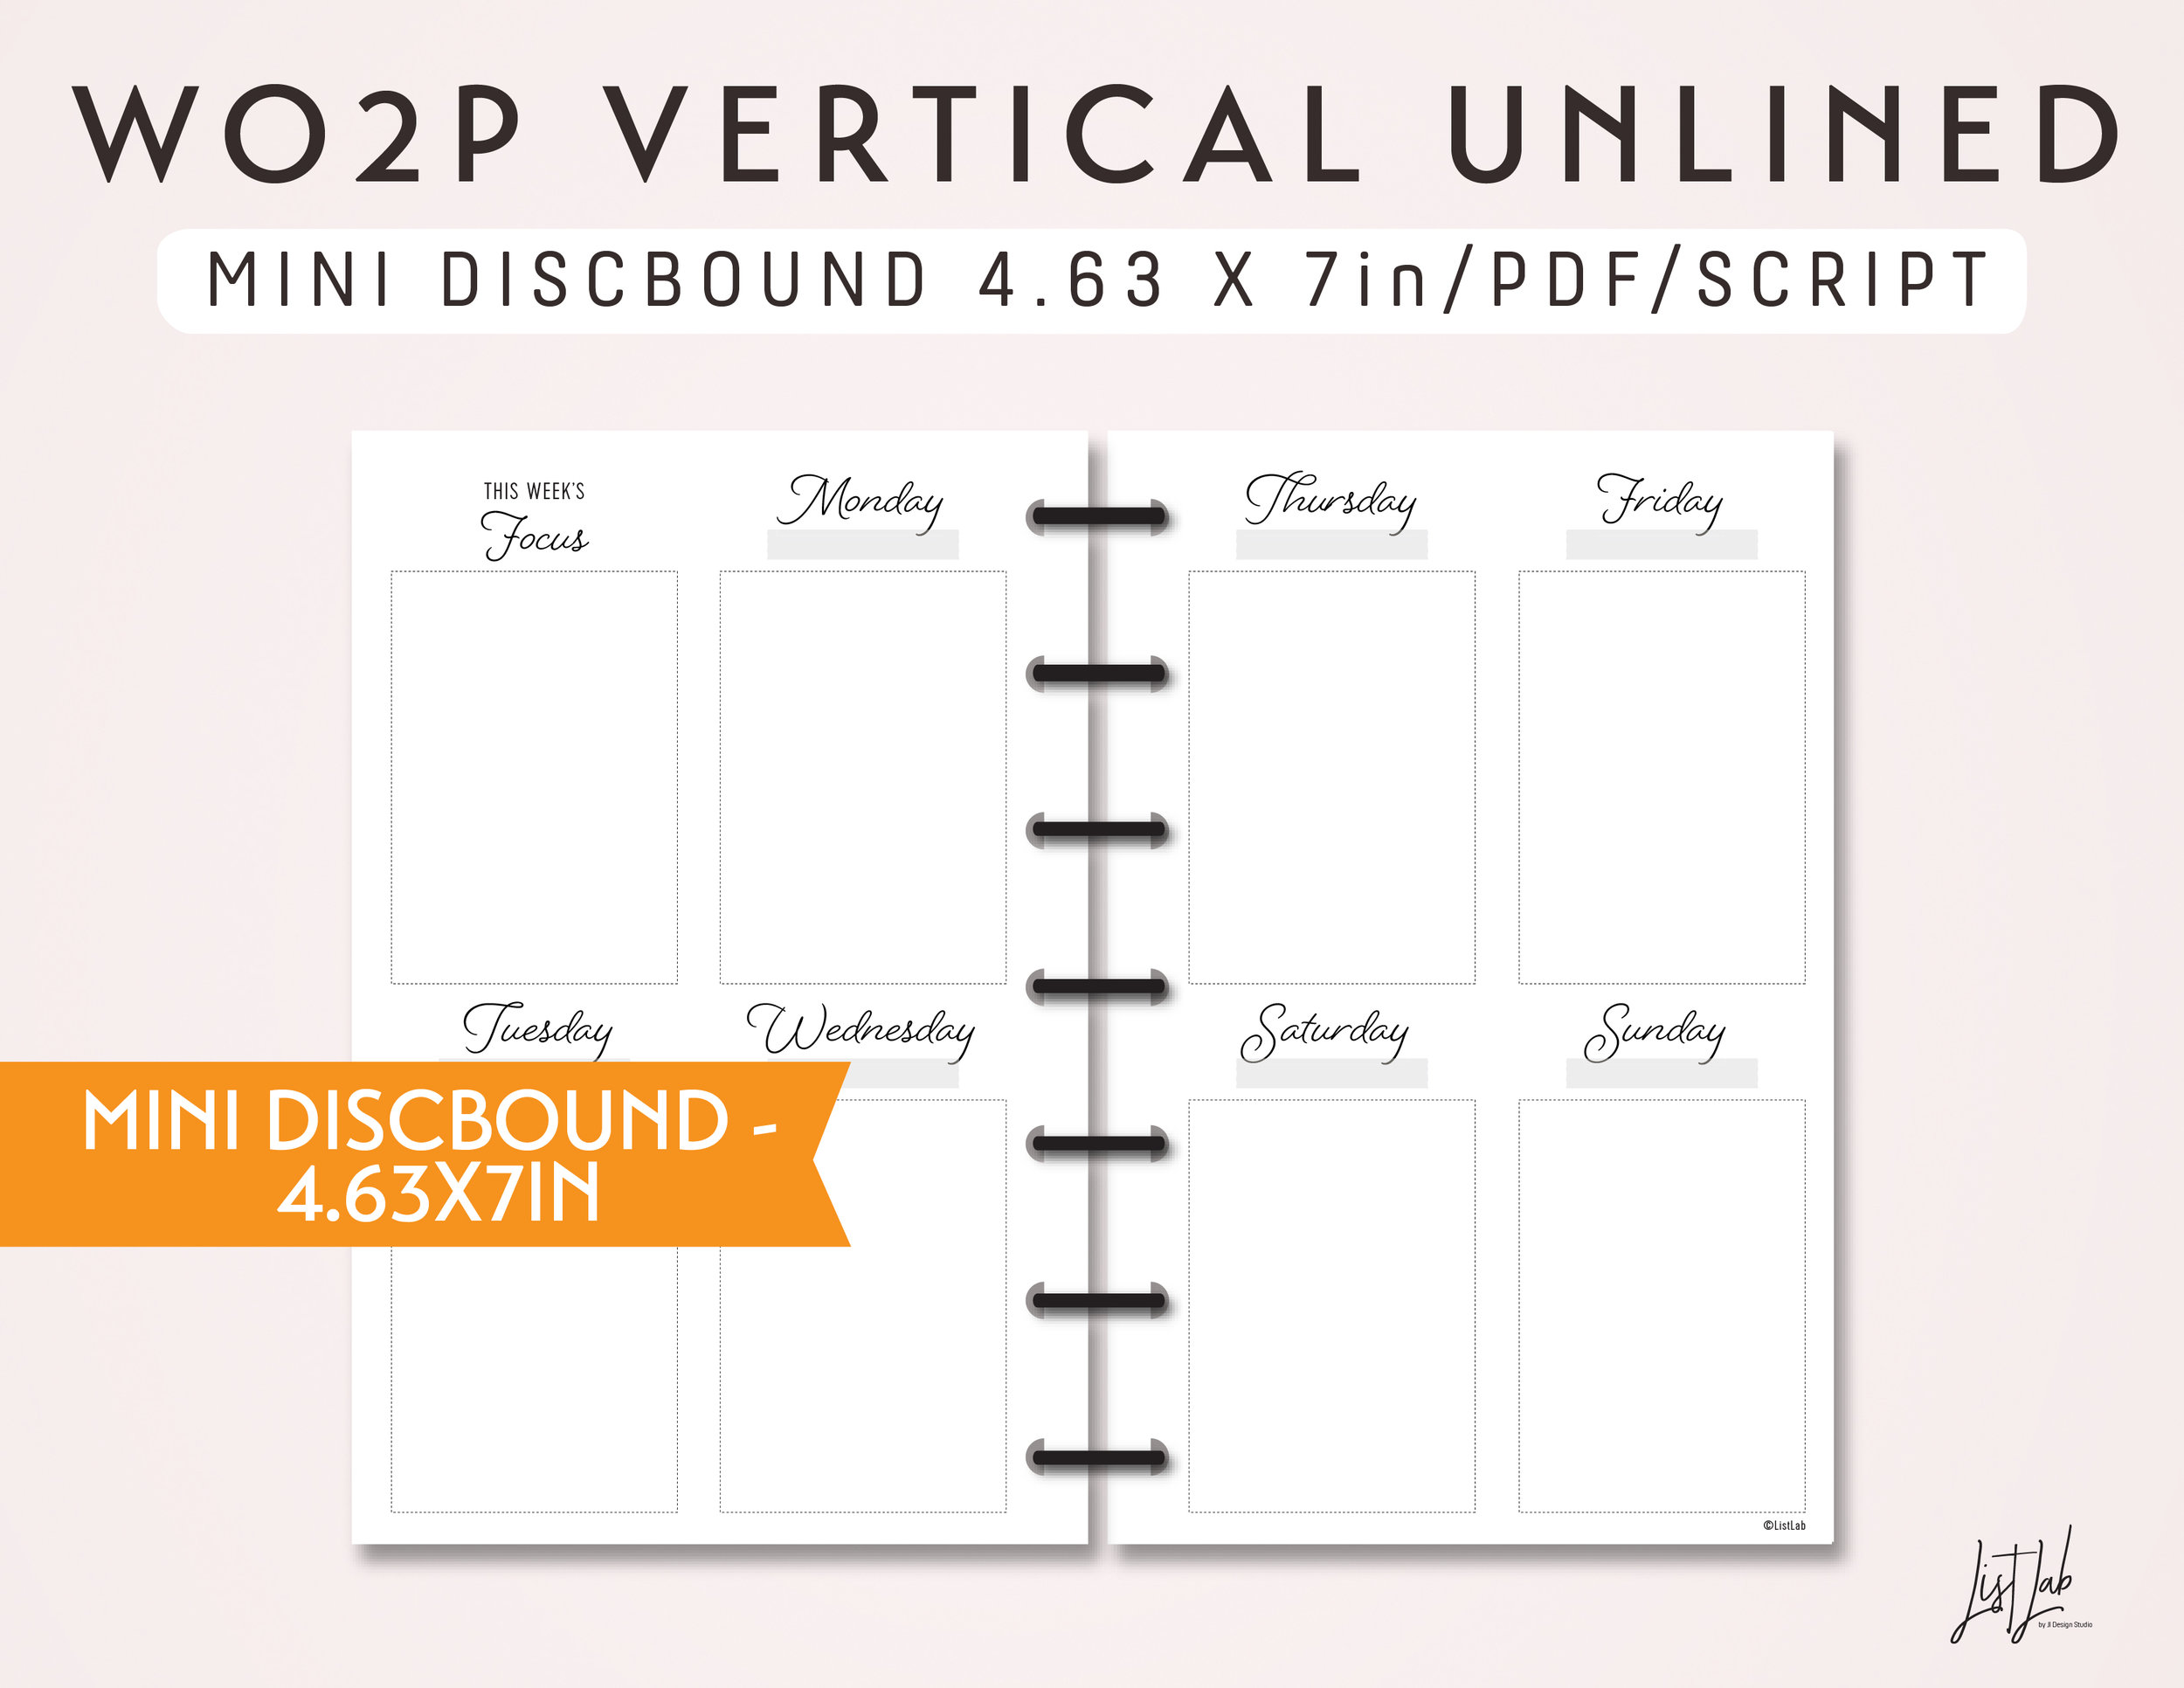 picture about Discbound Planner Pages Printable named MINI DISCBOUND 7 days upon 2 Web pages Vertical Unlined - Printable Discbound Planner Include (4.63 x 7in just)